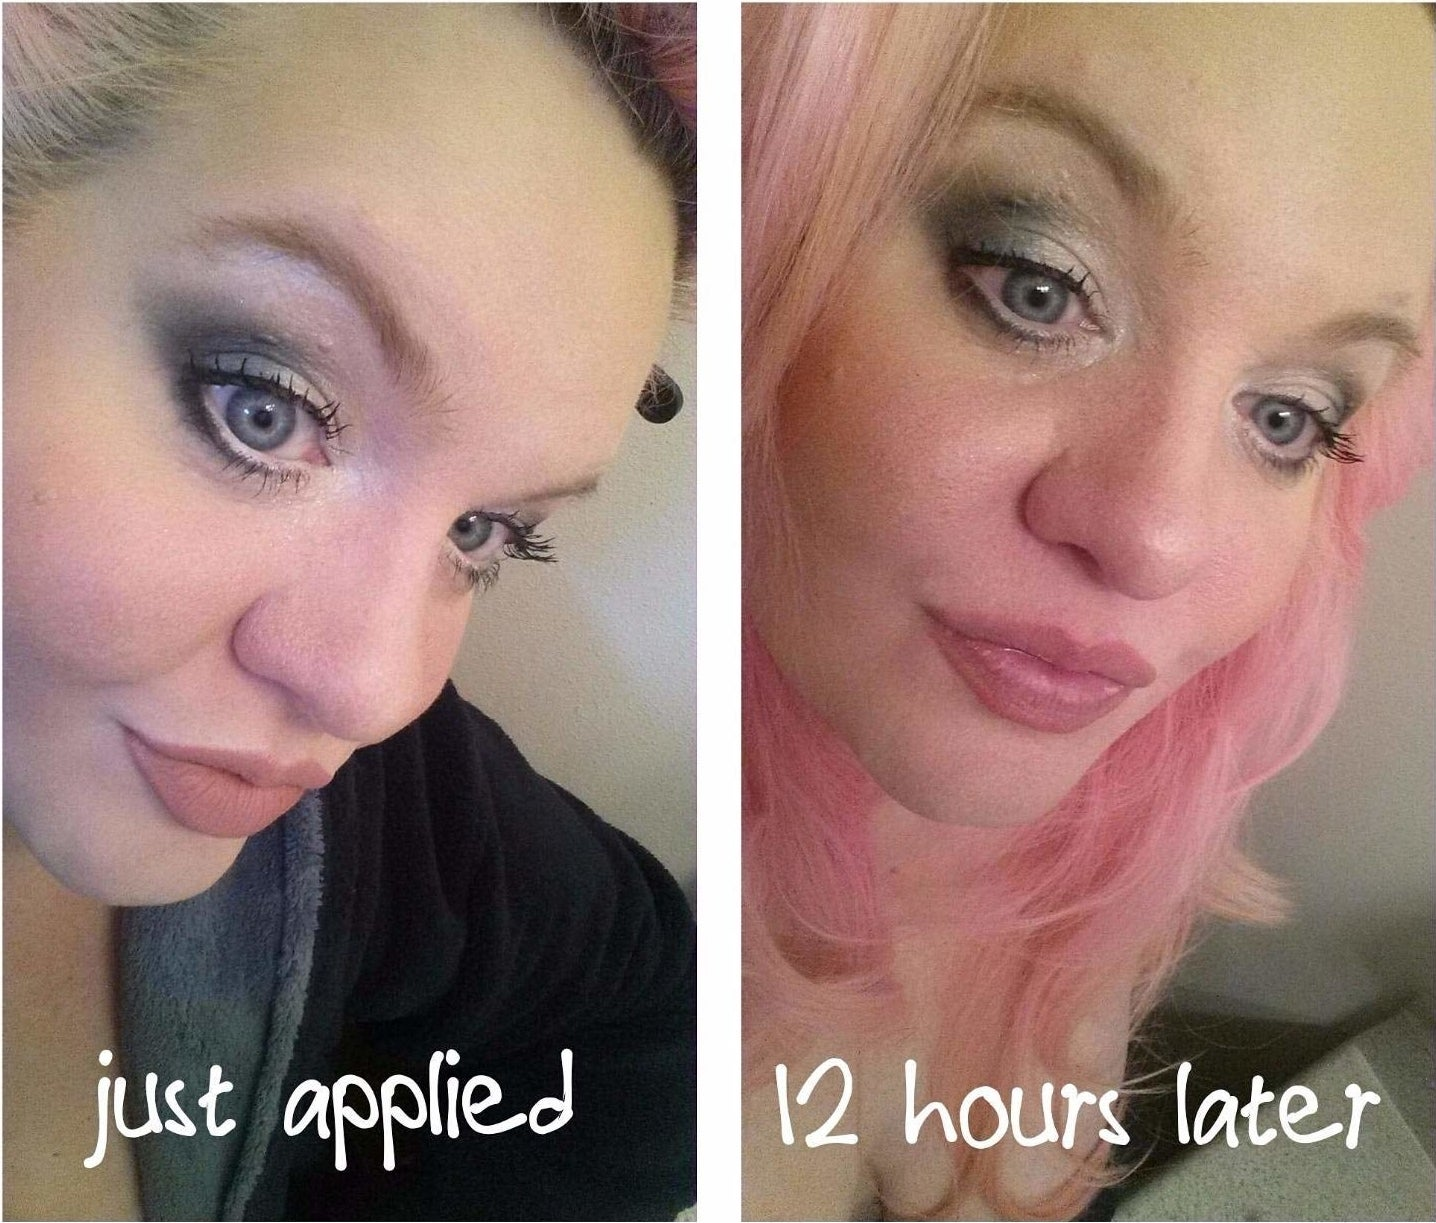 A reviewer's before: with full face of makeup and spray just applied and after: 12 hours later, all the makeup but her lipstick still intact